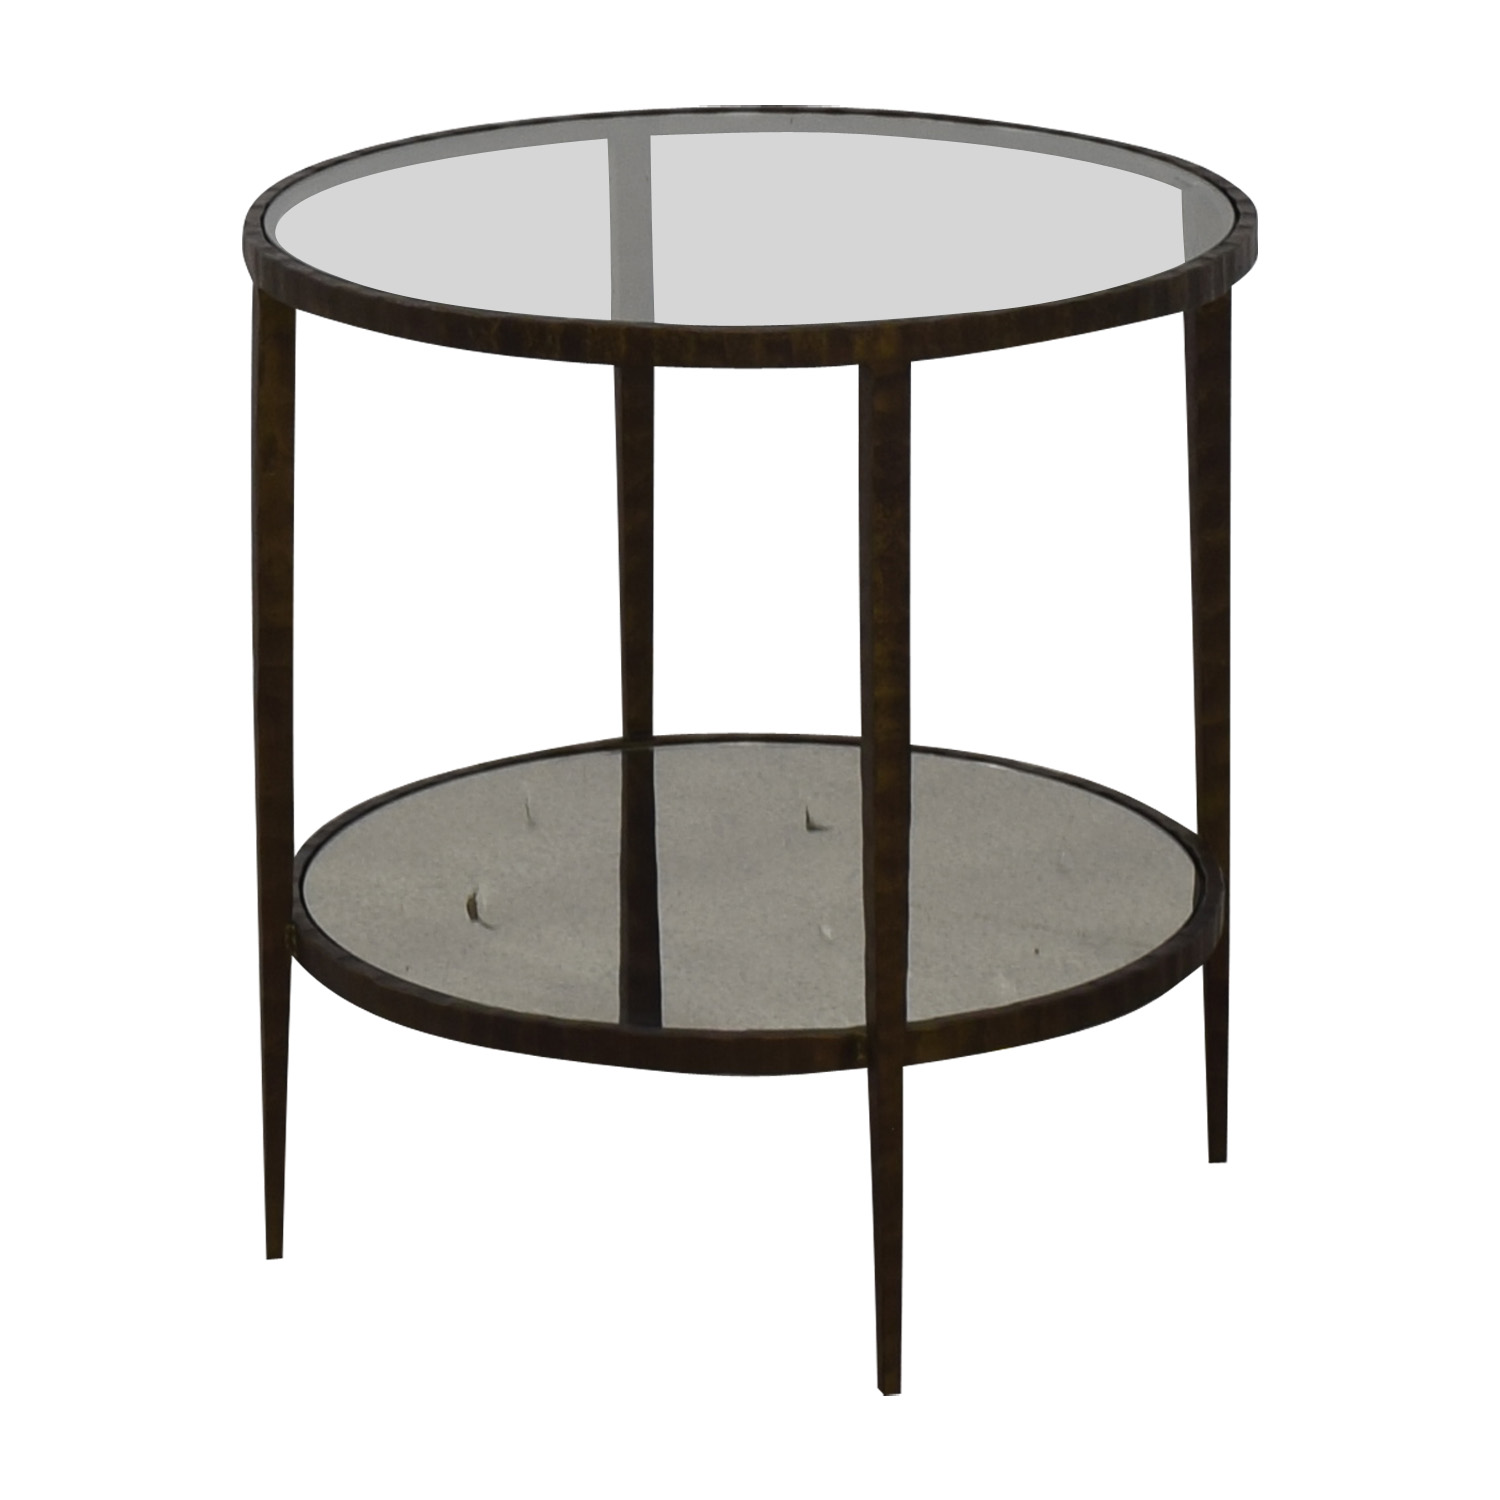 Crate & Barrel Crate & Barrel Clairemont Round Side Table for sale